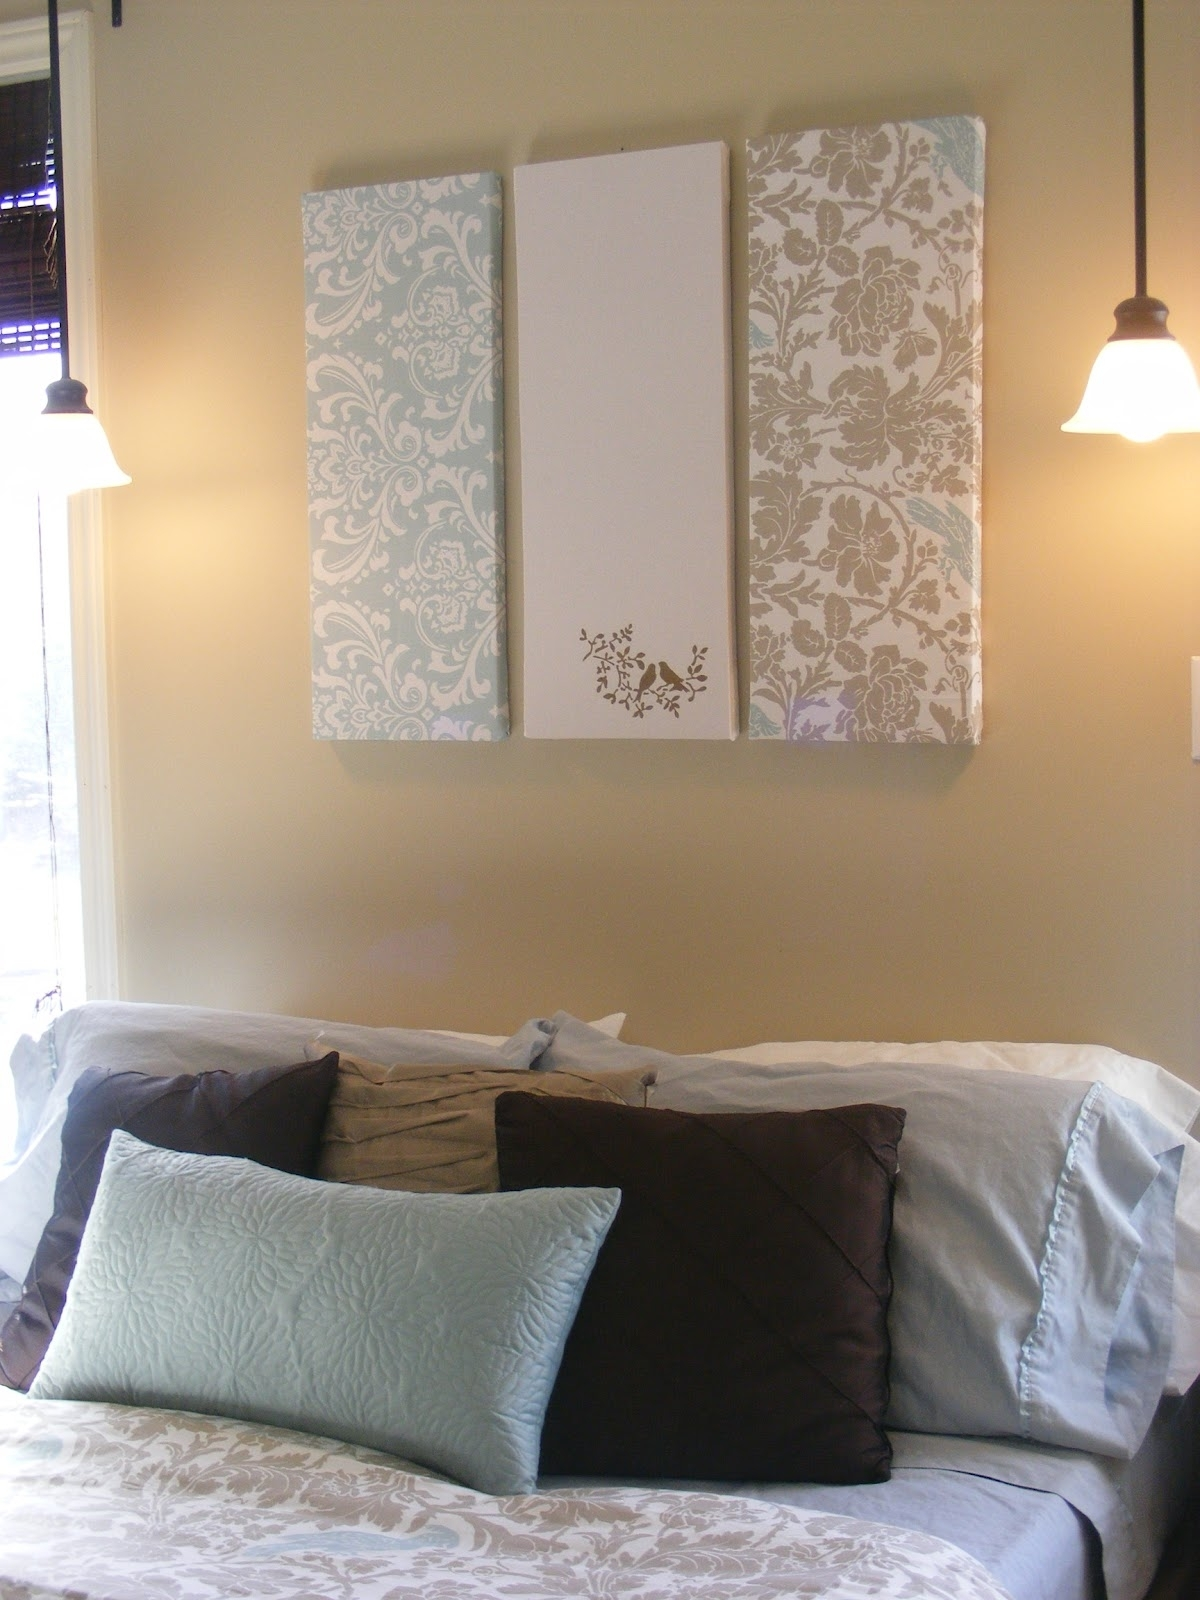 The Complete Guide To Imperfect Homemaking: Simple, Thrifty Diy Art In Most Recently Released Fabric Covered Foam Wall Art (View 2 of 15)